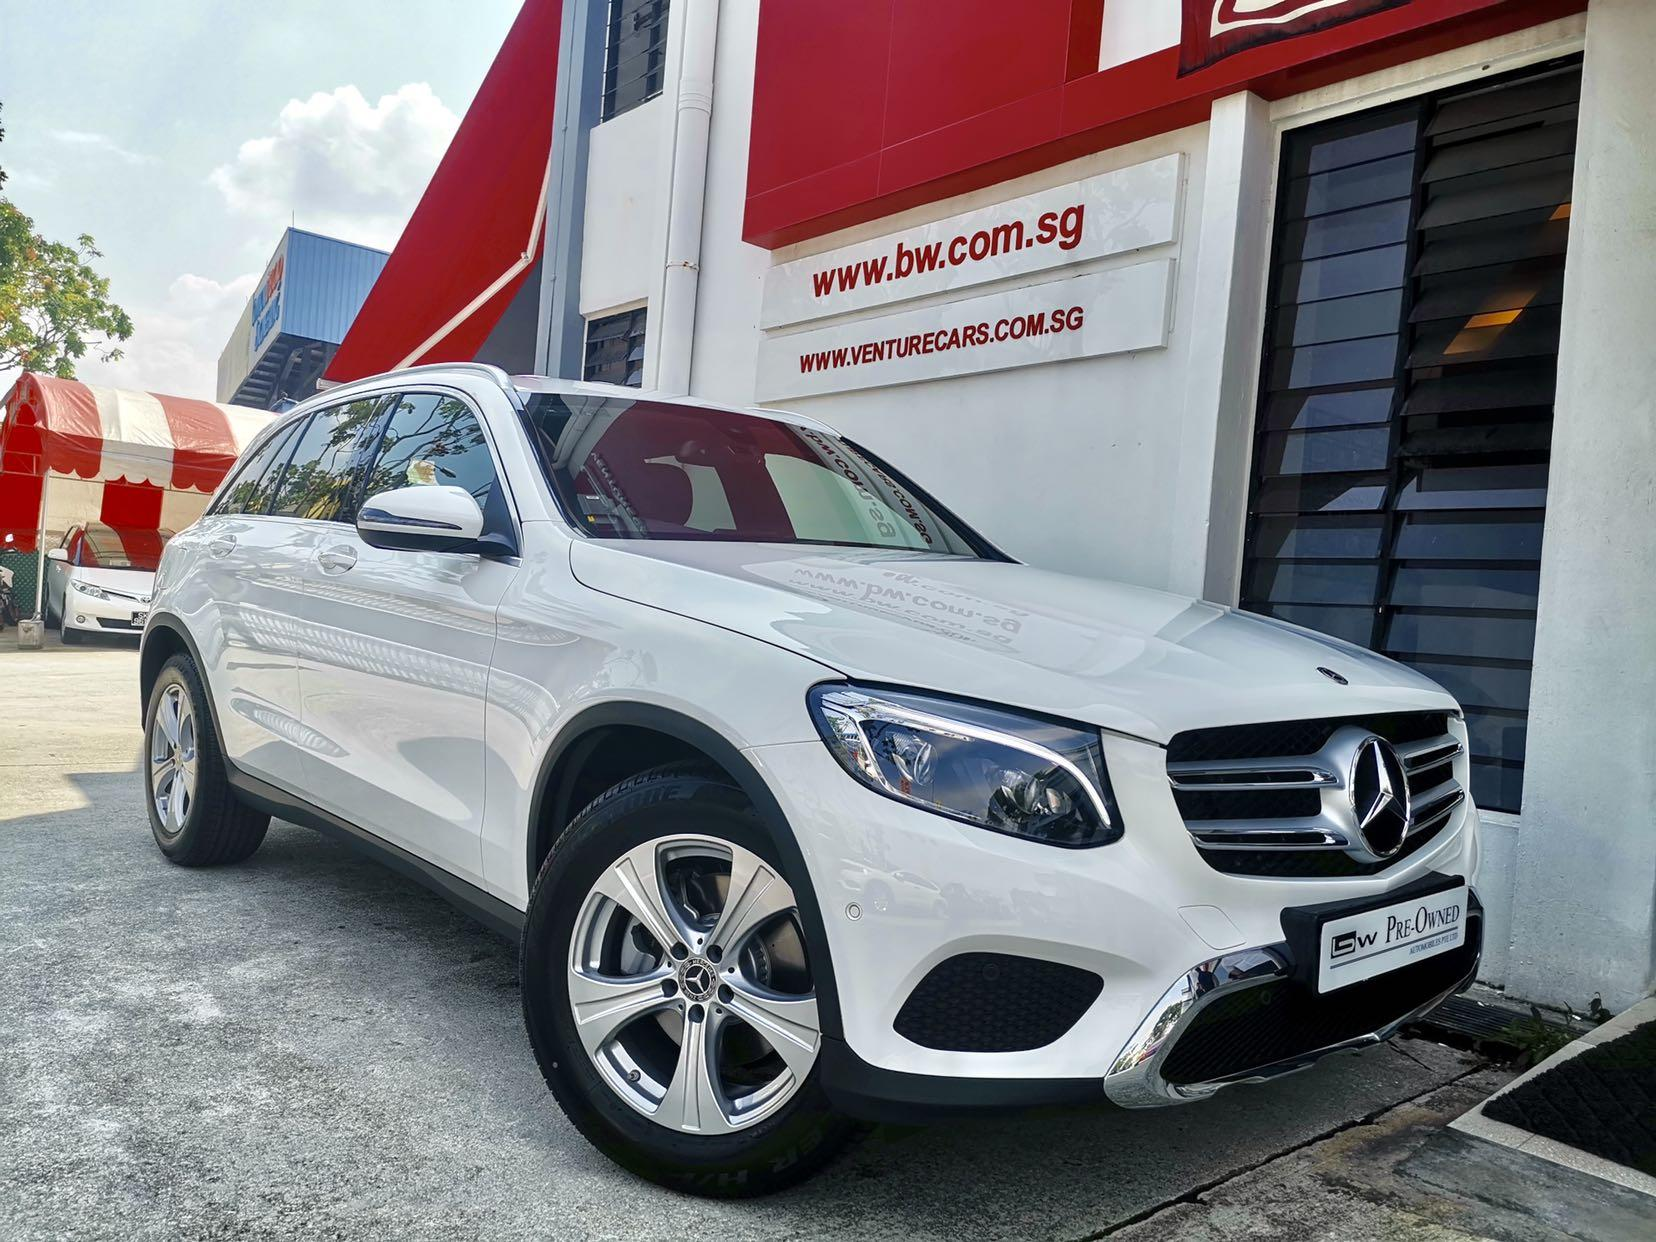 BRAND NEW MB GLC200 FOR RENT! LOW RATE!!!